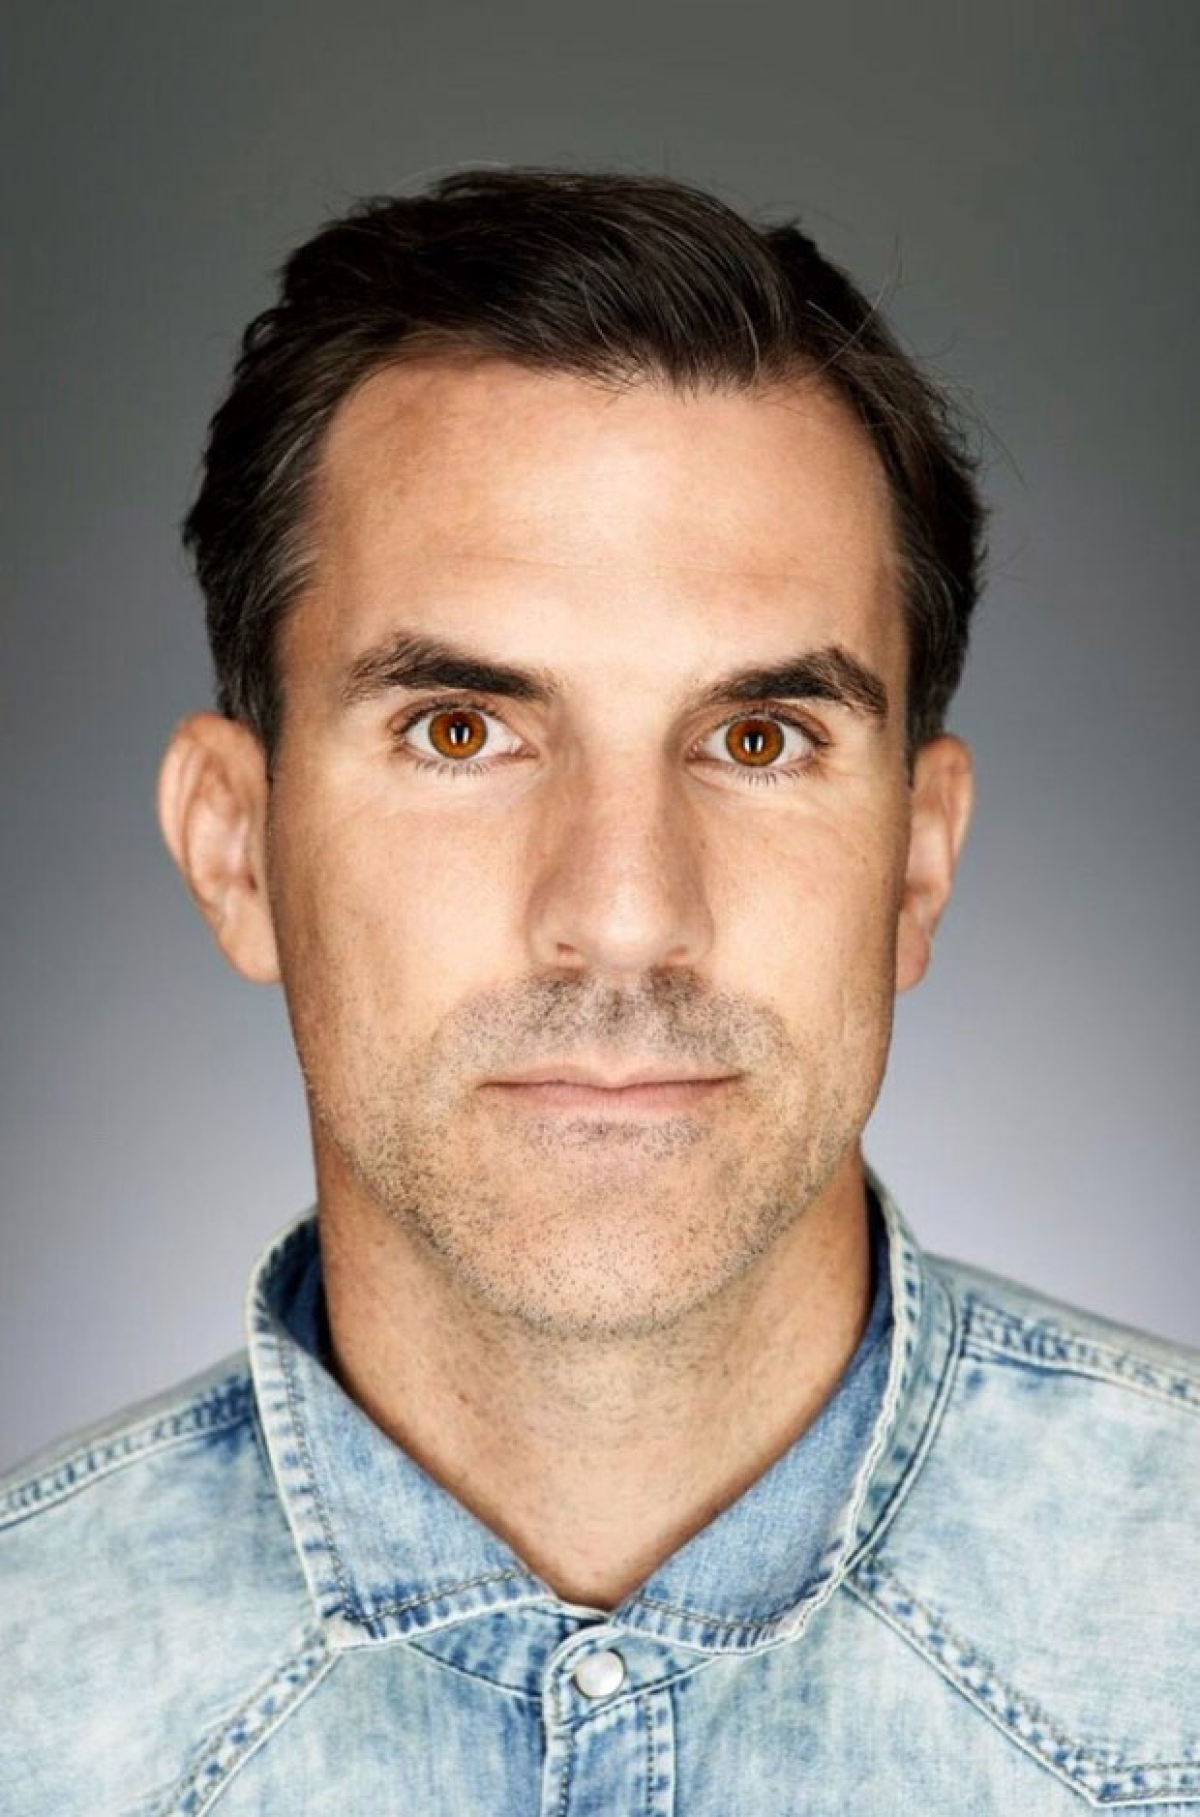 Straight Theater Makeup On Myself: Paul Schneider Completes Cast Of Young Jean Lee's Straight